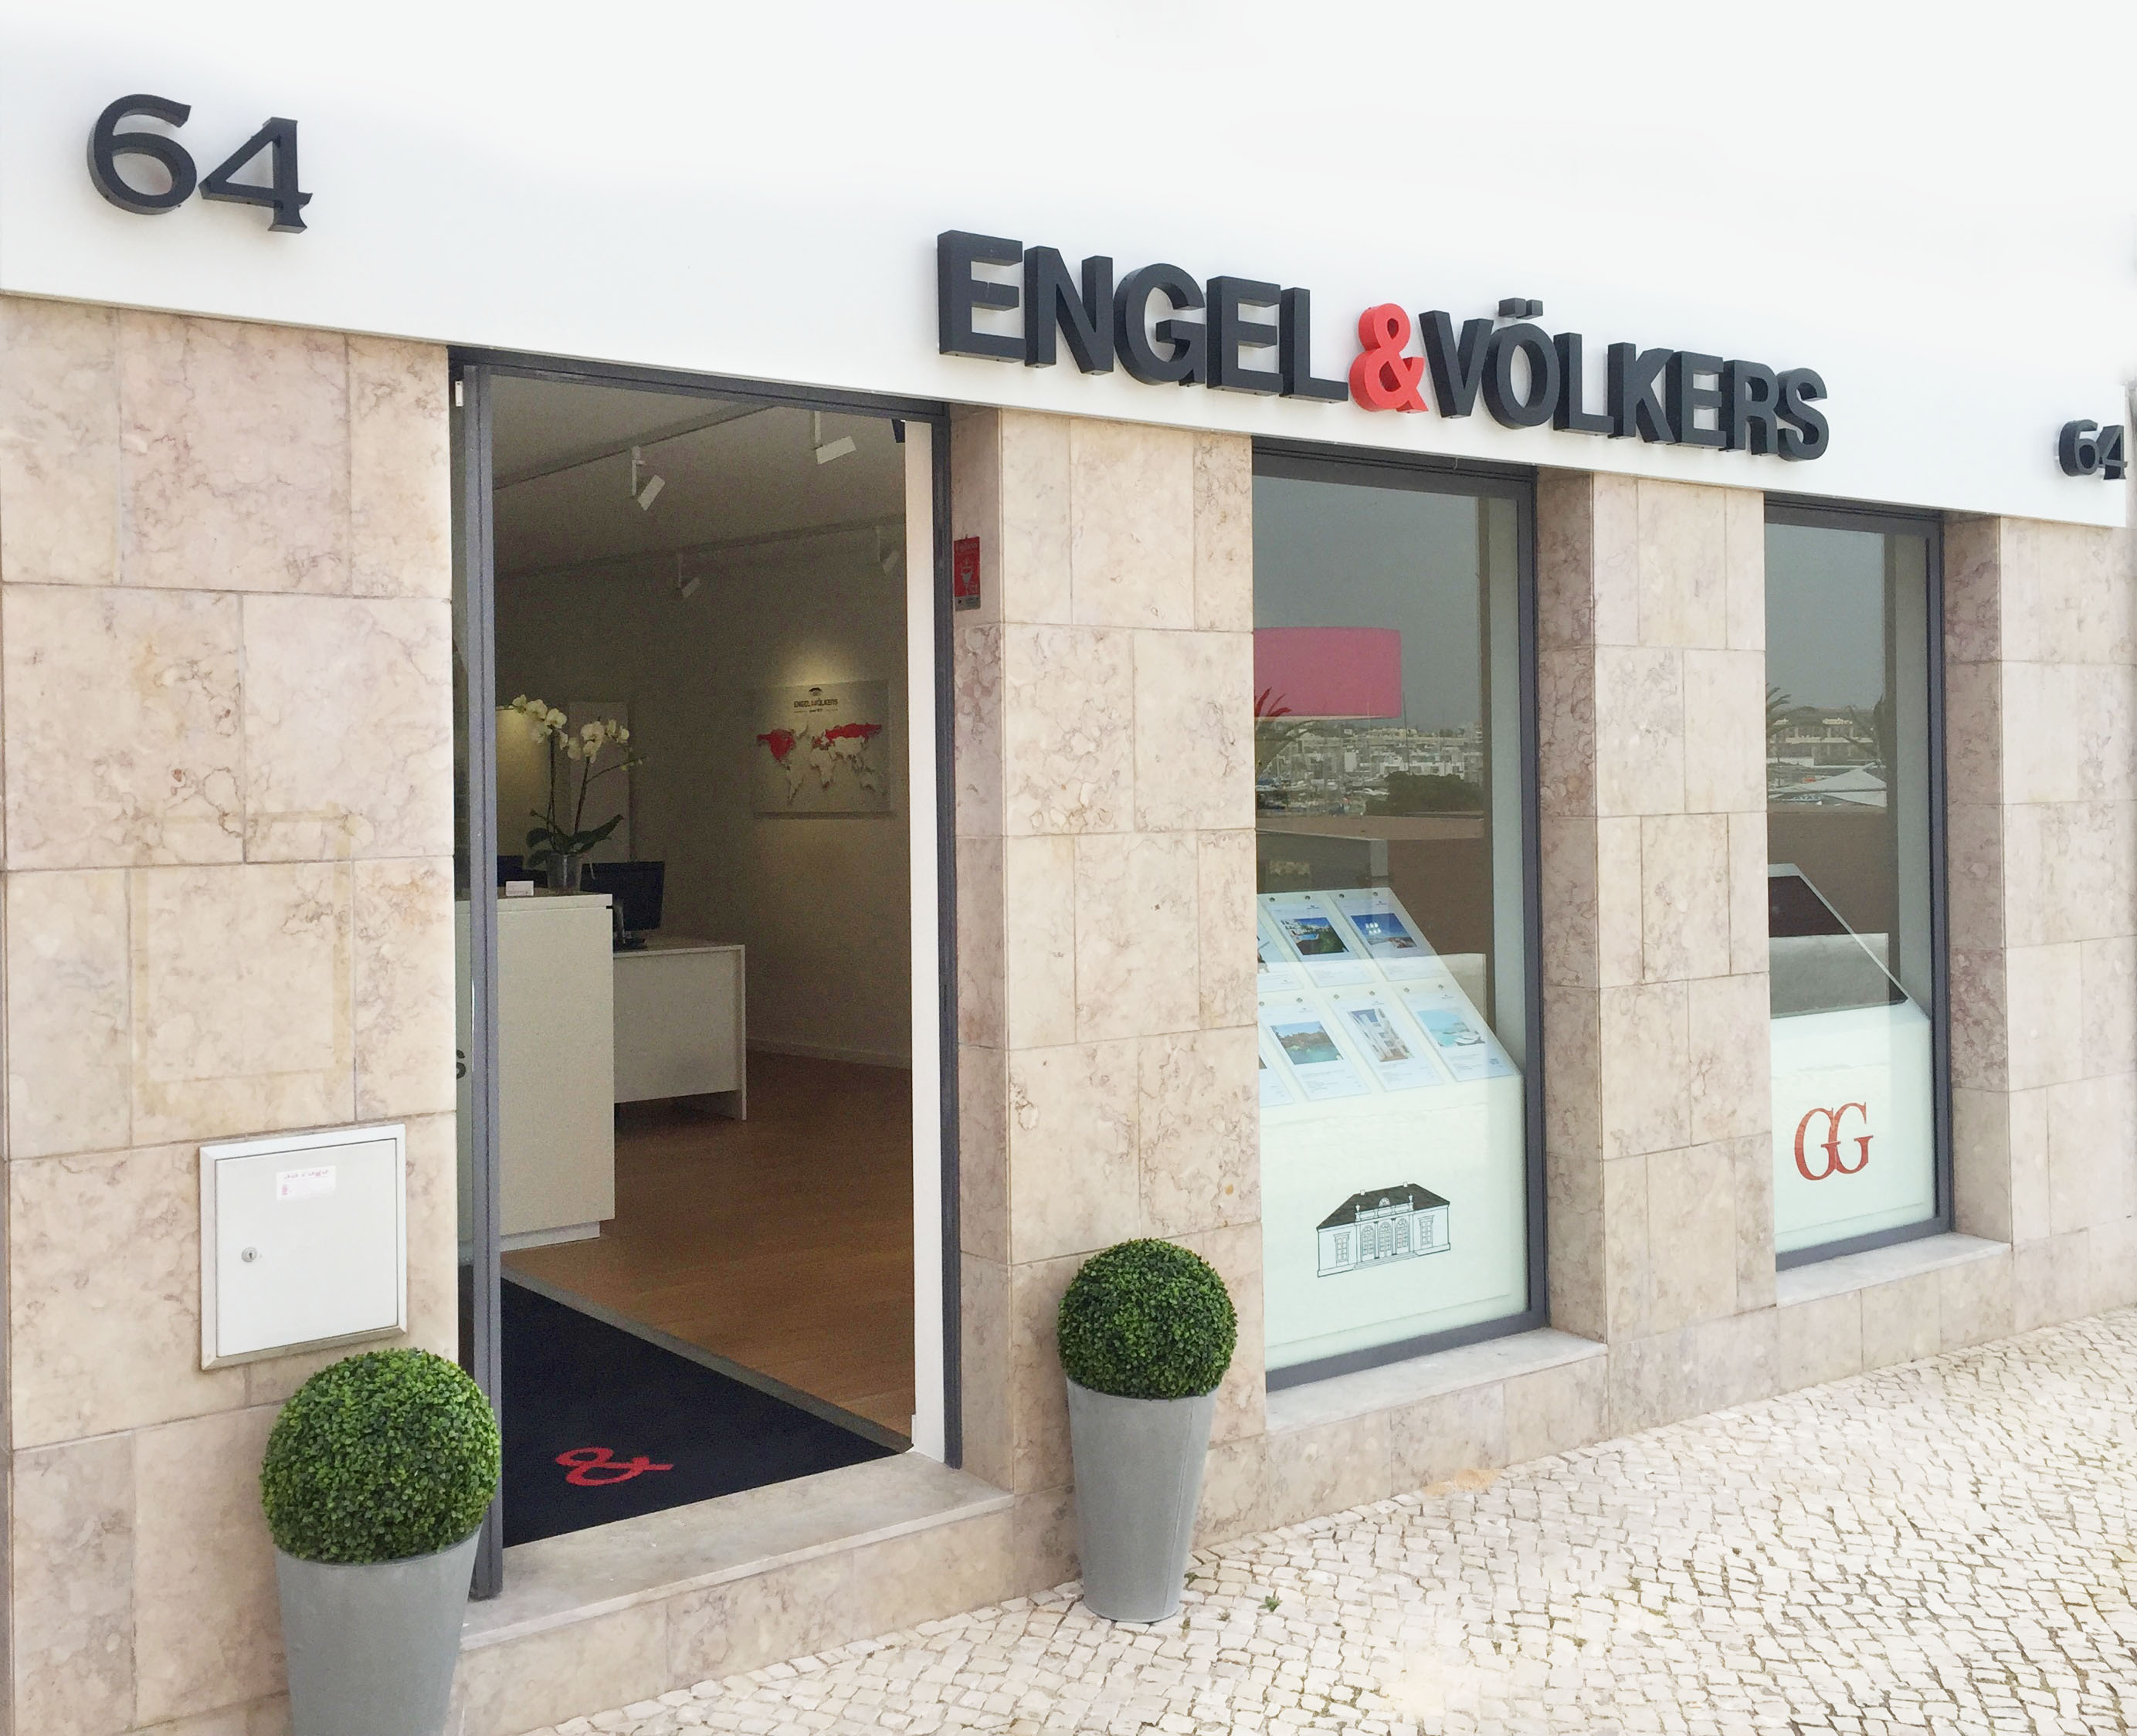 Engel v lkers - Engel and wolkers ...